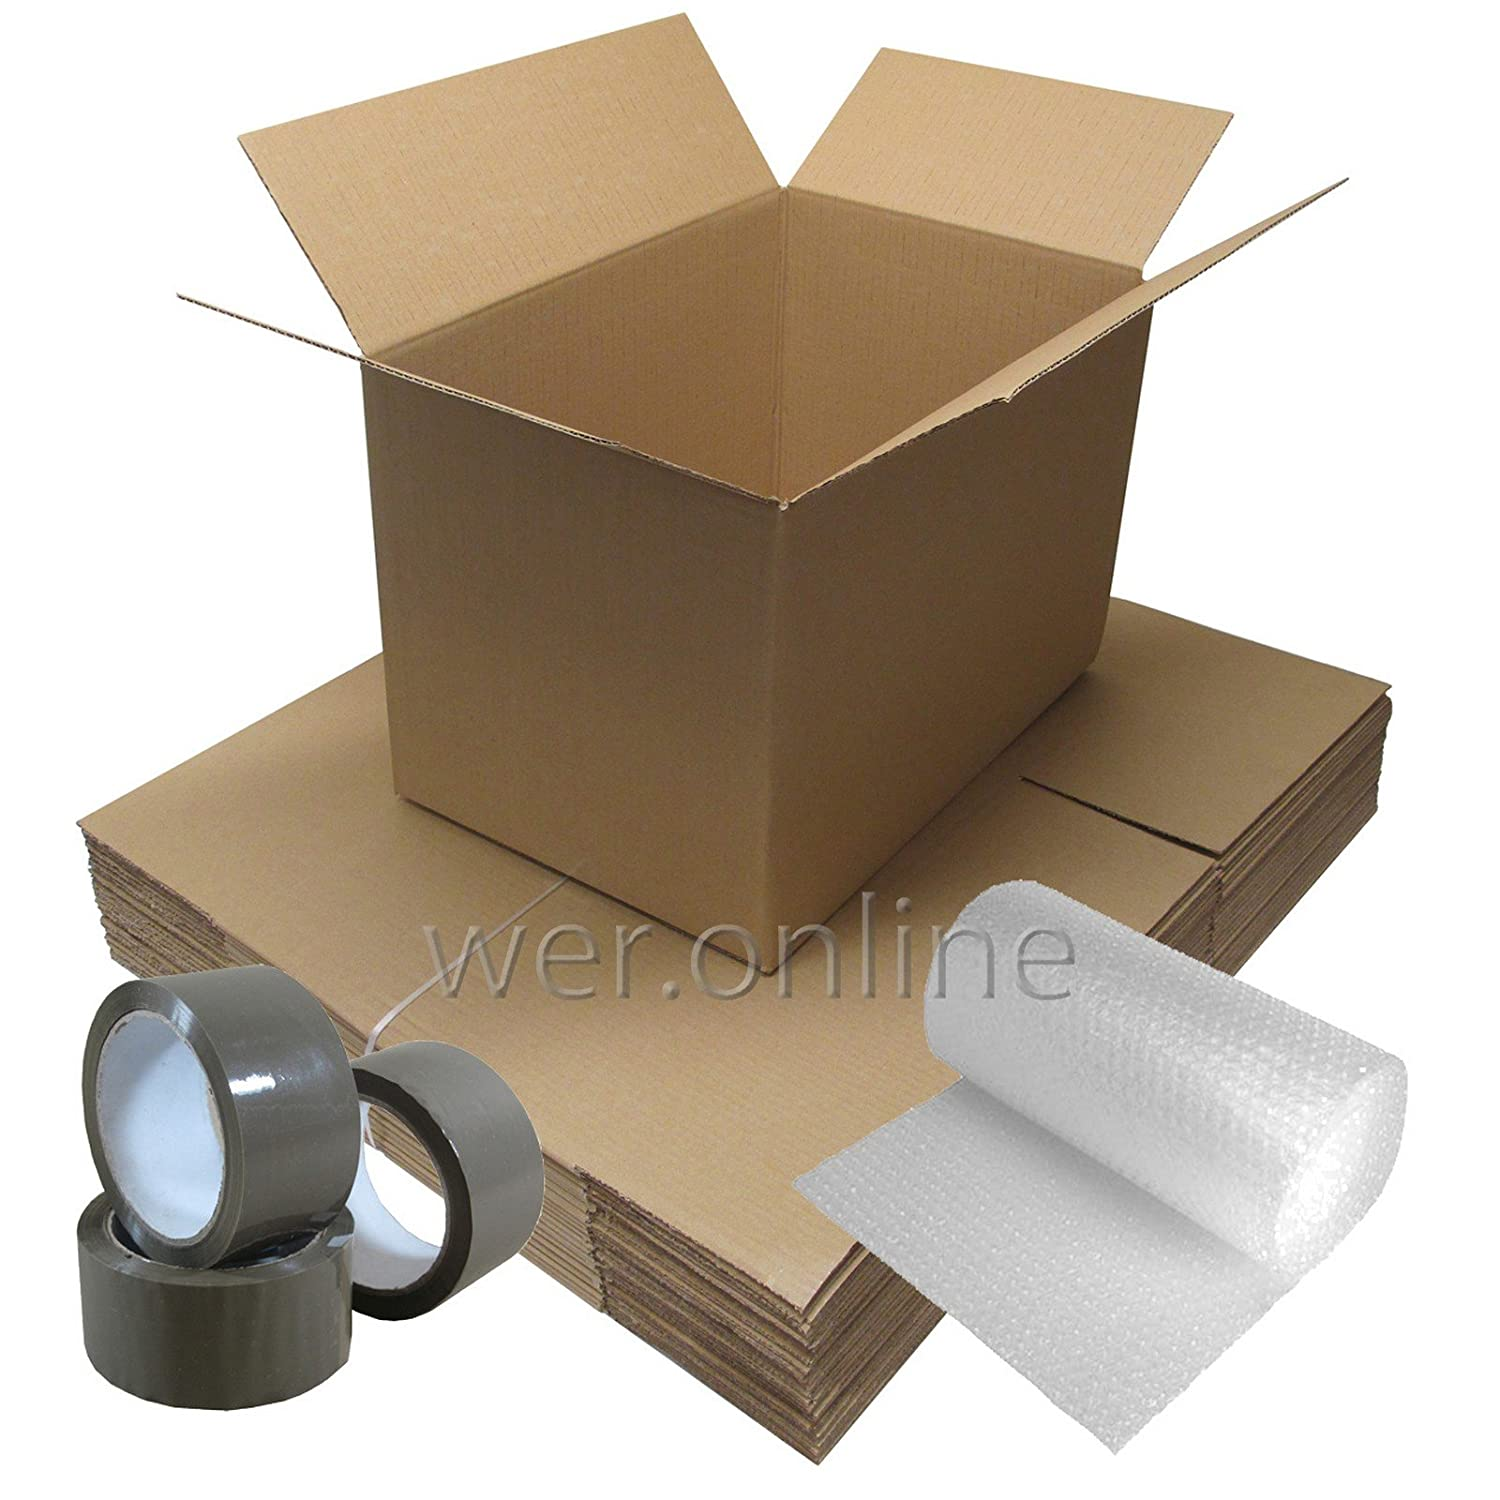 House Removal Moving Pack - 25 Cardboard Boxes SW, Tape, and 10M Bubble Wrap … and 10M Bubble Wrap ... W E Roberts (Packing Supplies) Ltd